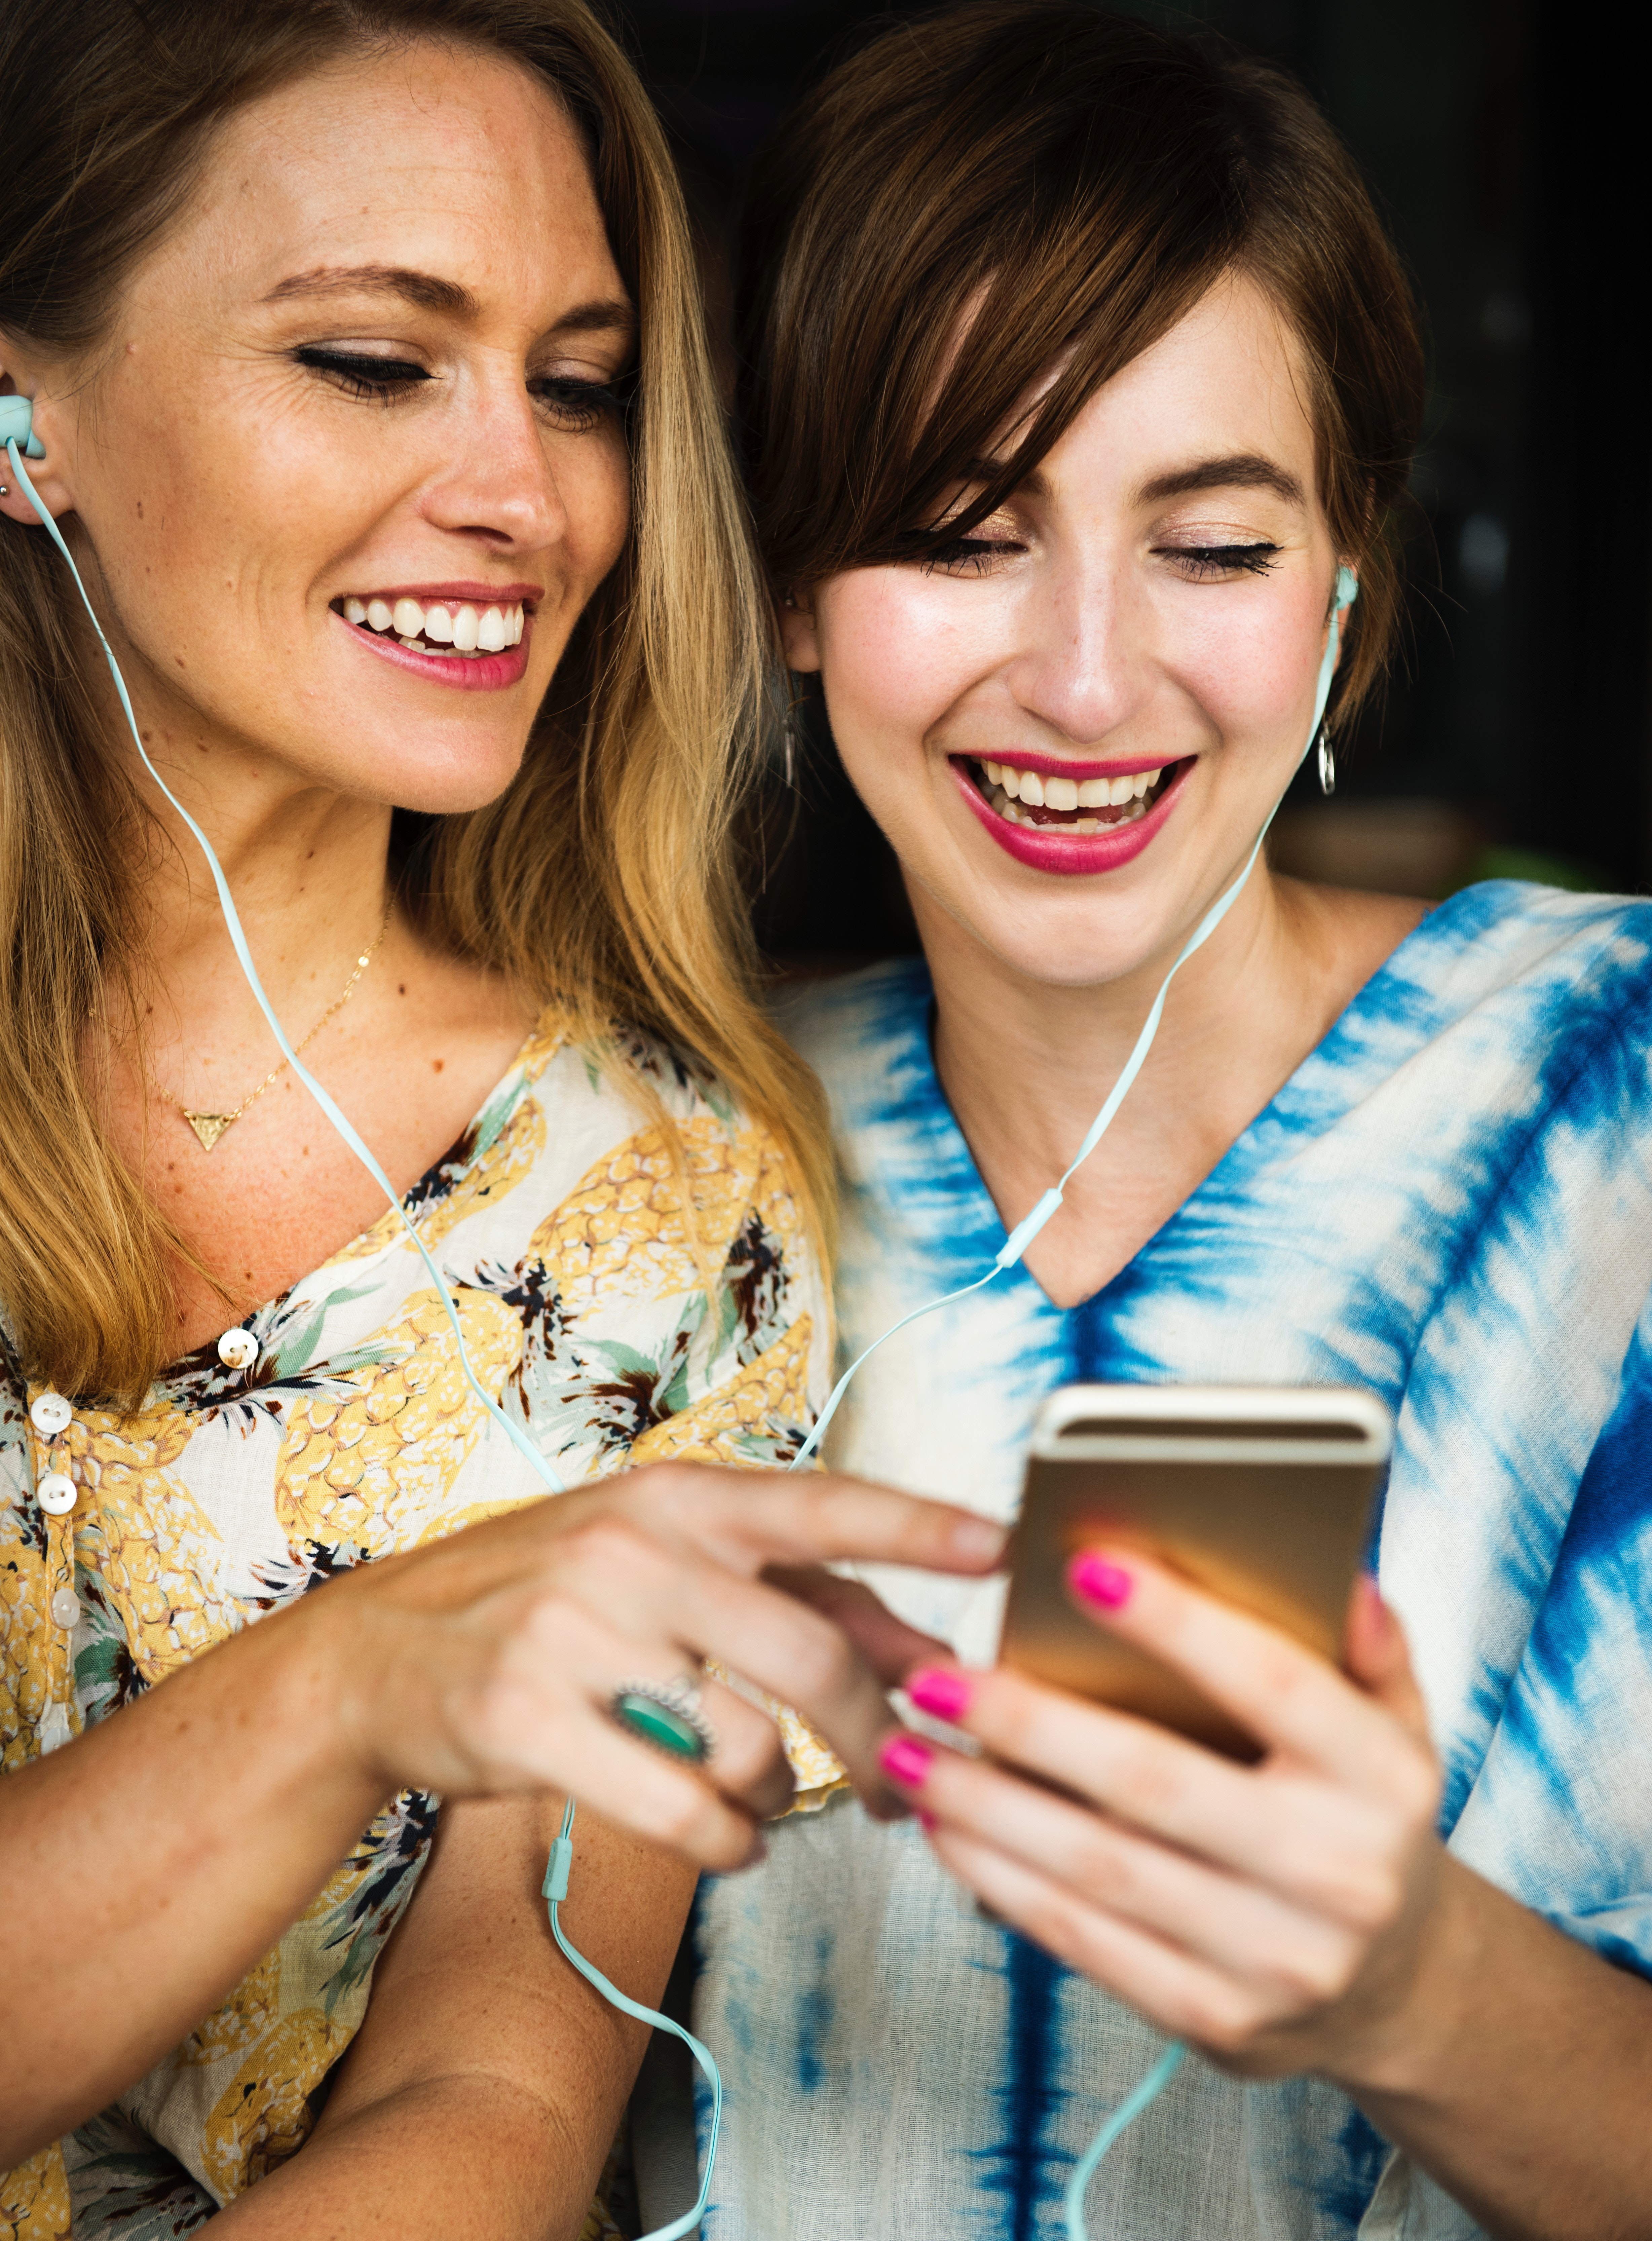 Two Girls Using Iphone, Adult, Songs, Media, Modern, HQ Photo